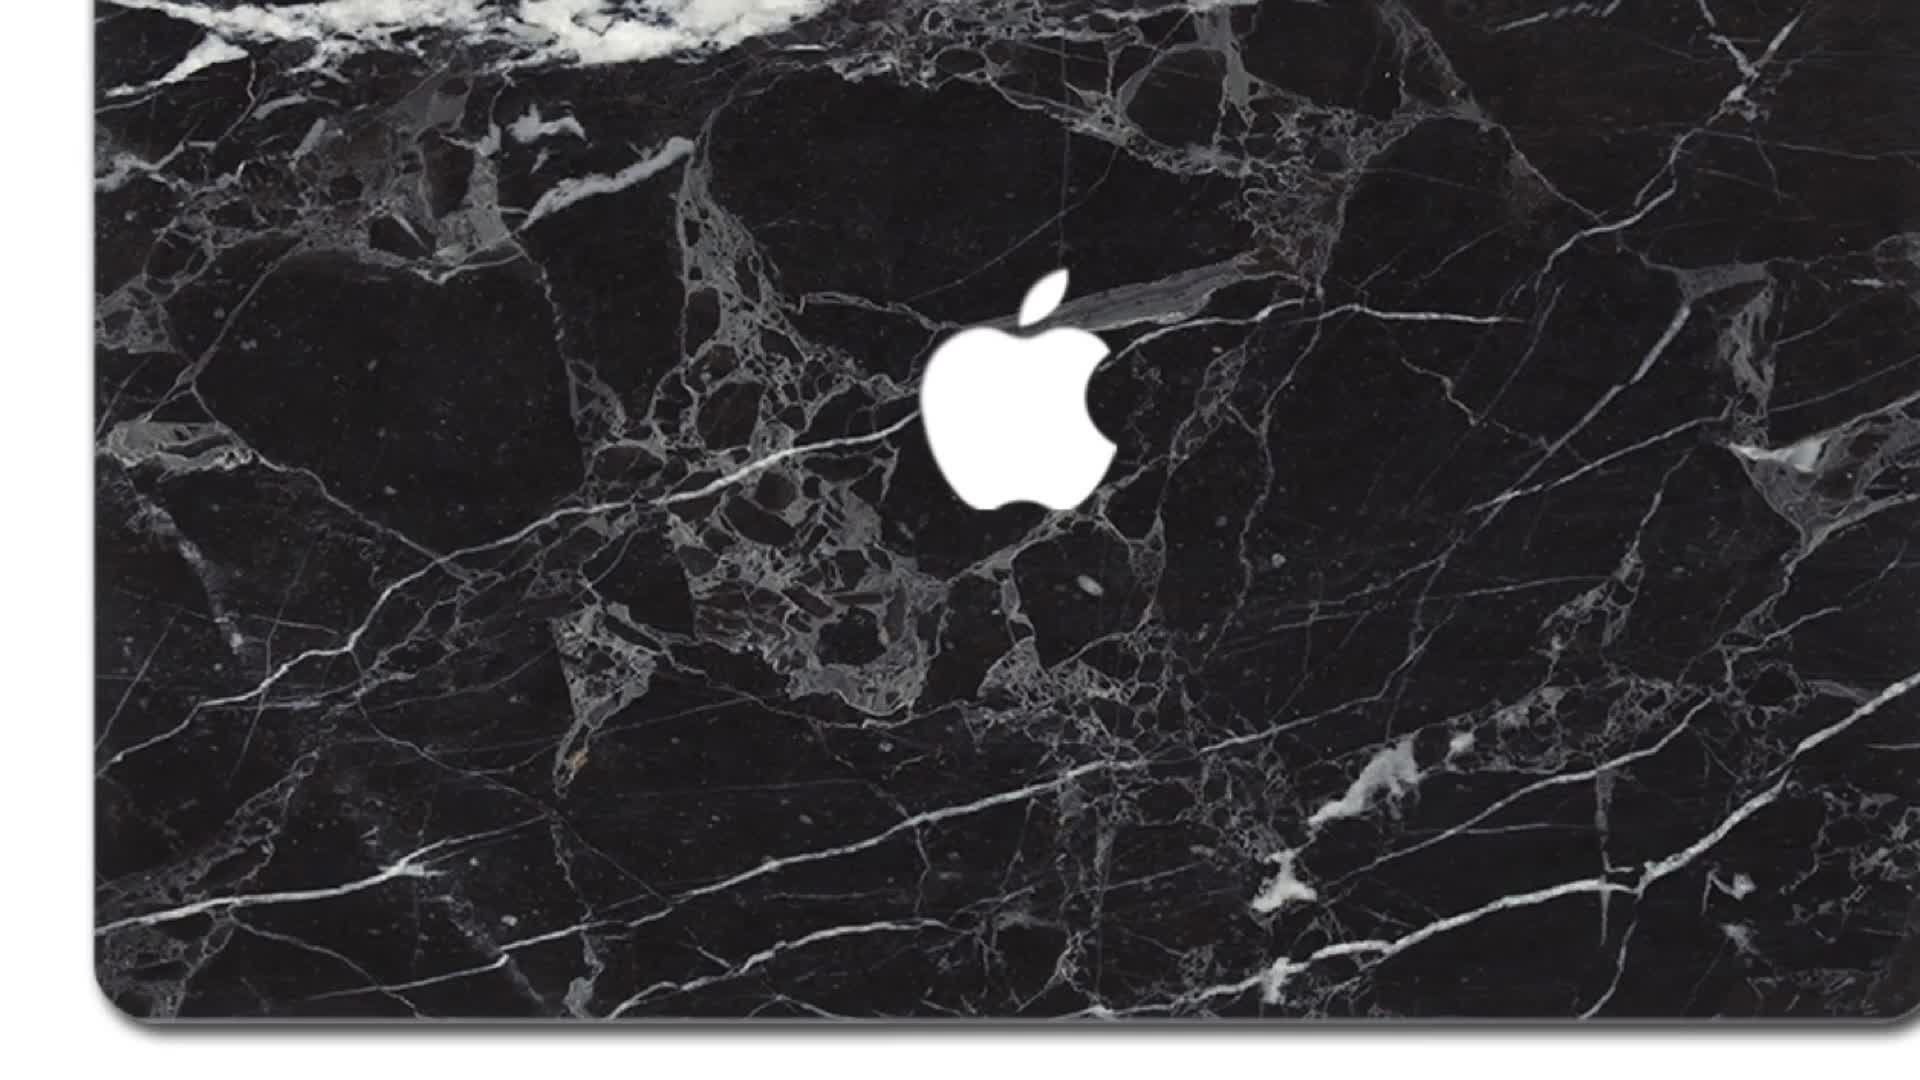 Macbook Marble Wallpaper For Laptop